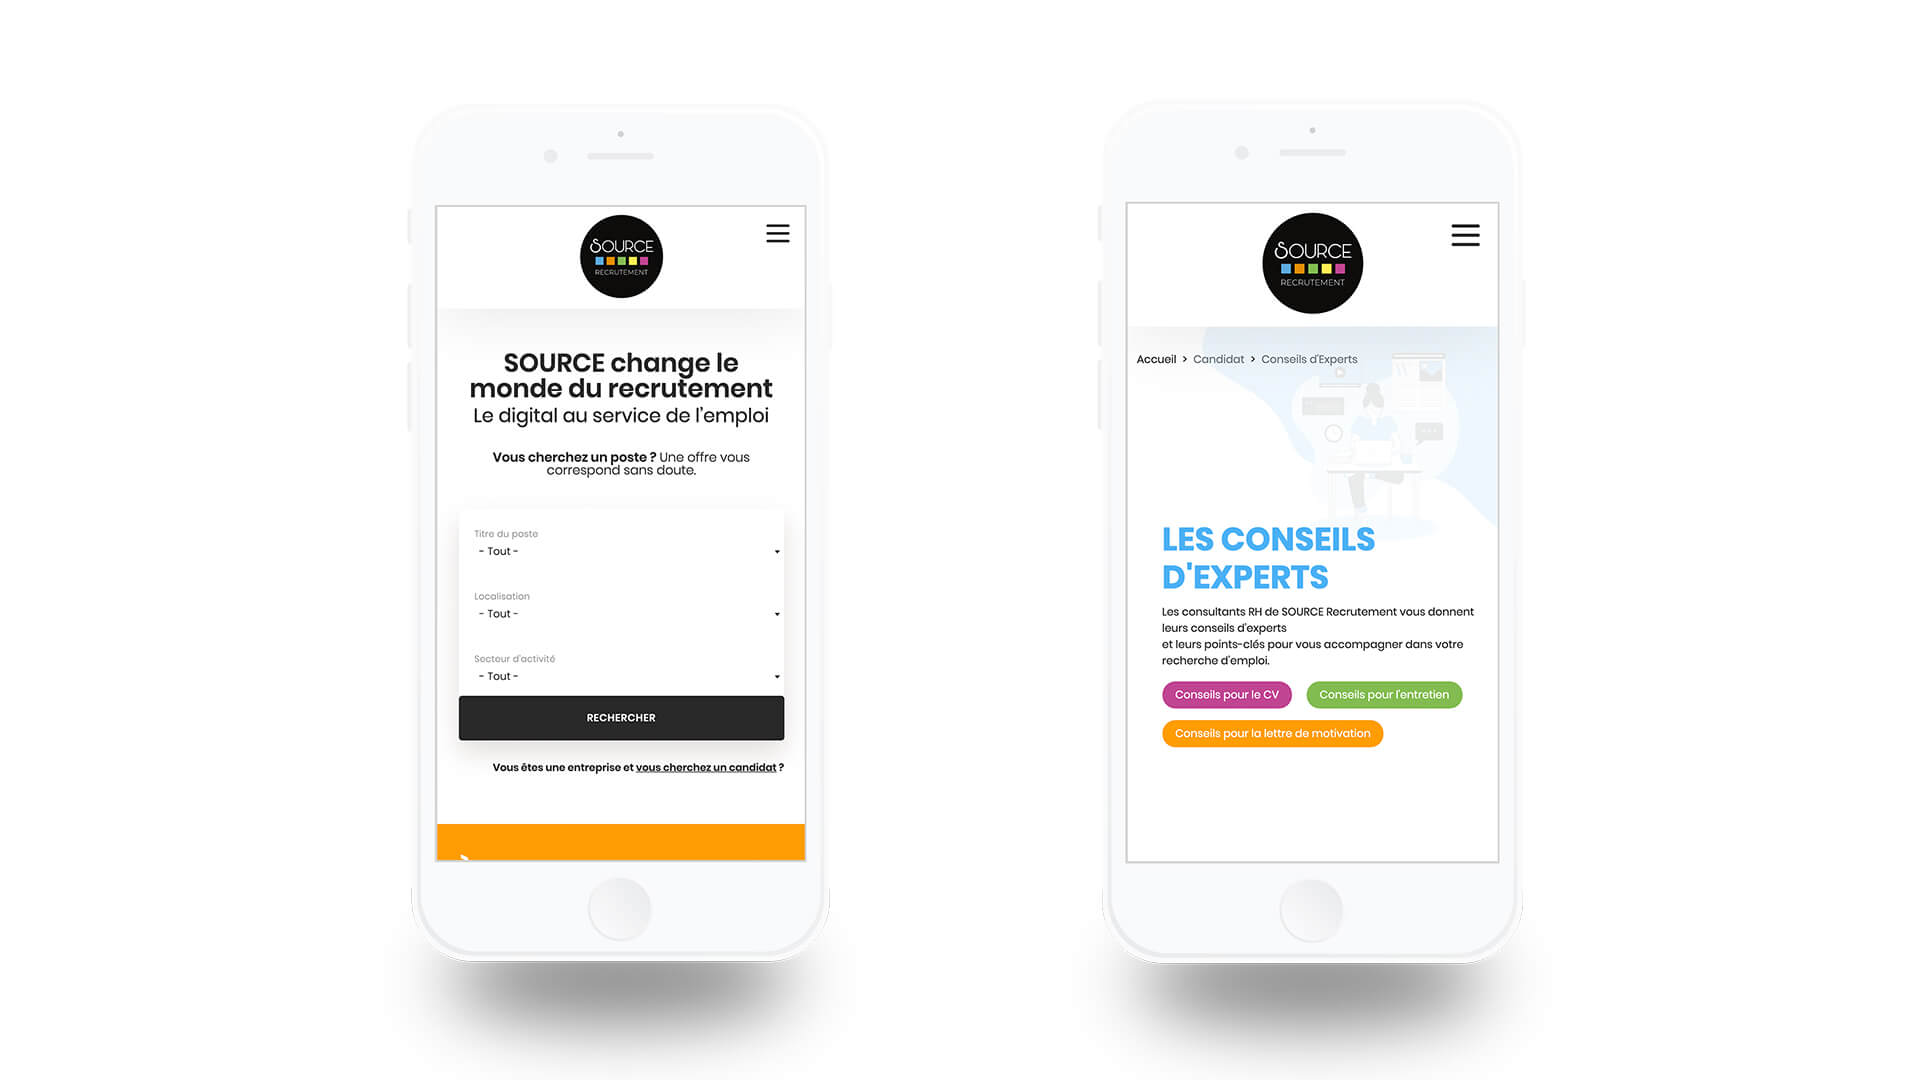 Iphone-mockup-source-recrutement-agence-communication-tours-paris